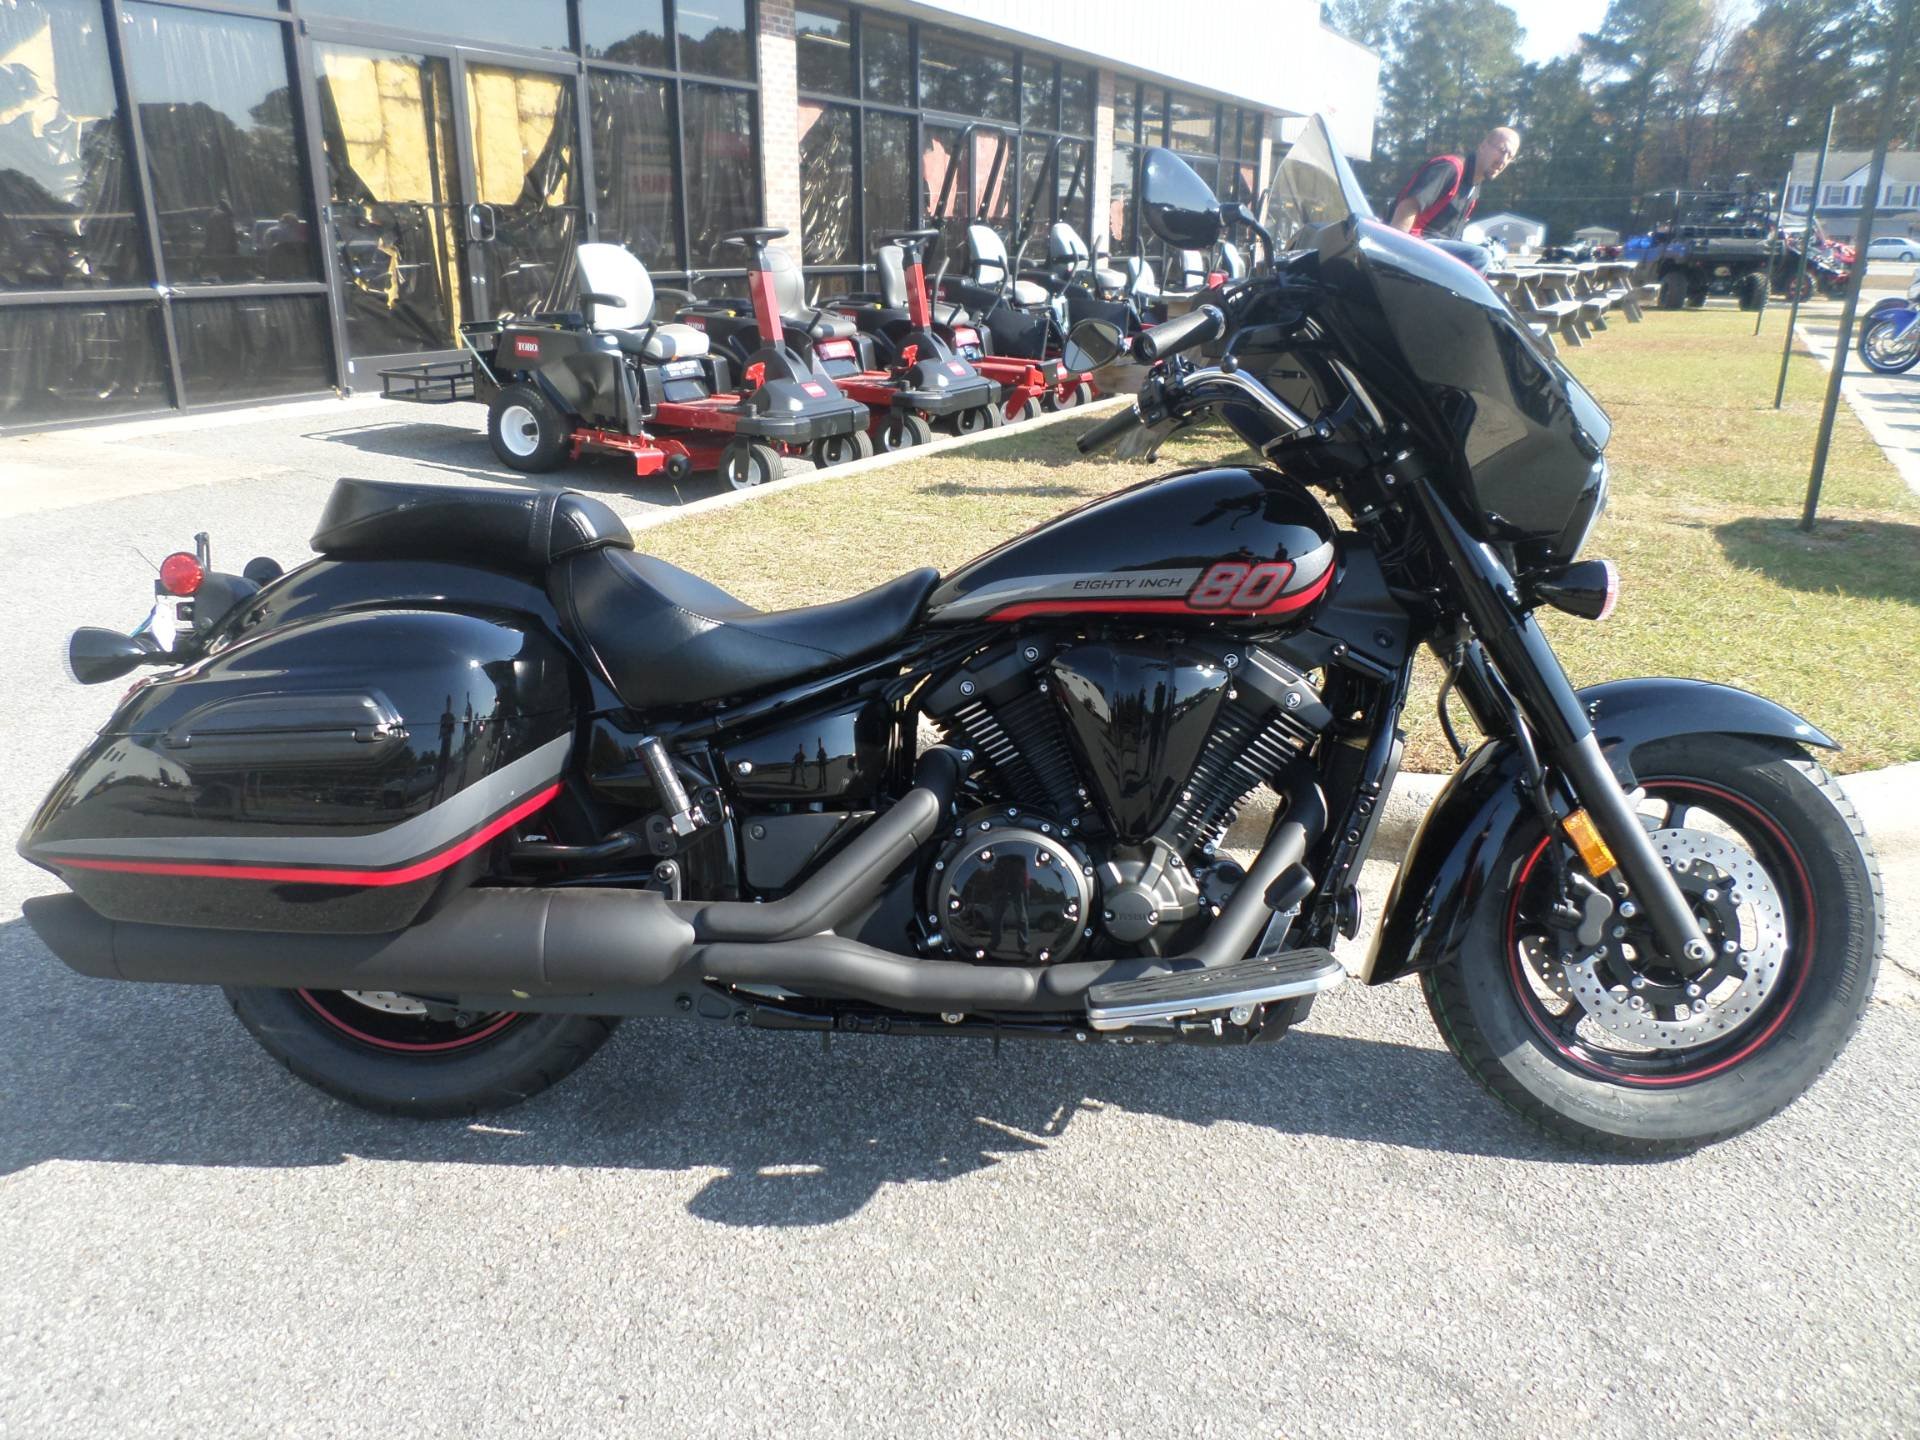 New 2017 Yamaha V Star 1300 Deluxe Motorcycles in Greenville NC